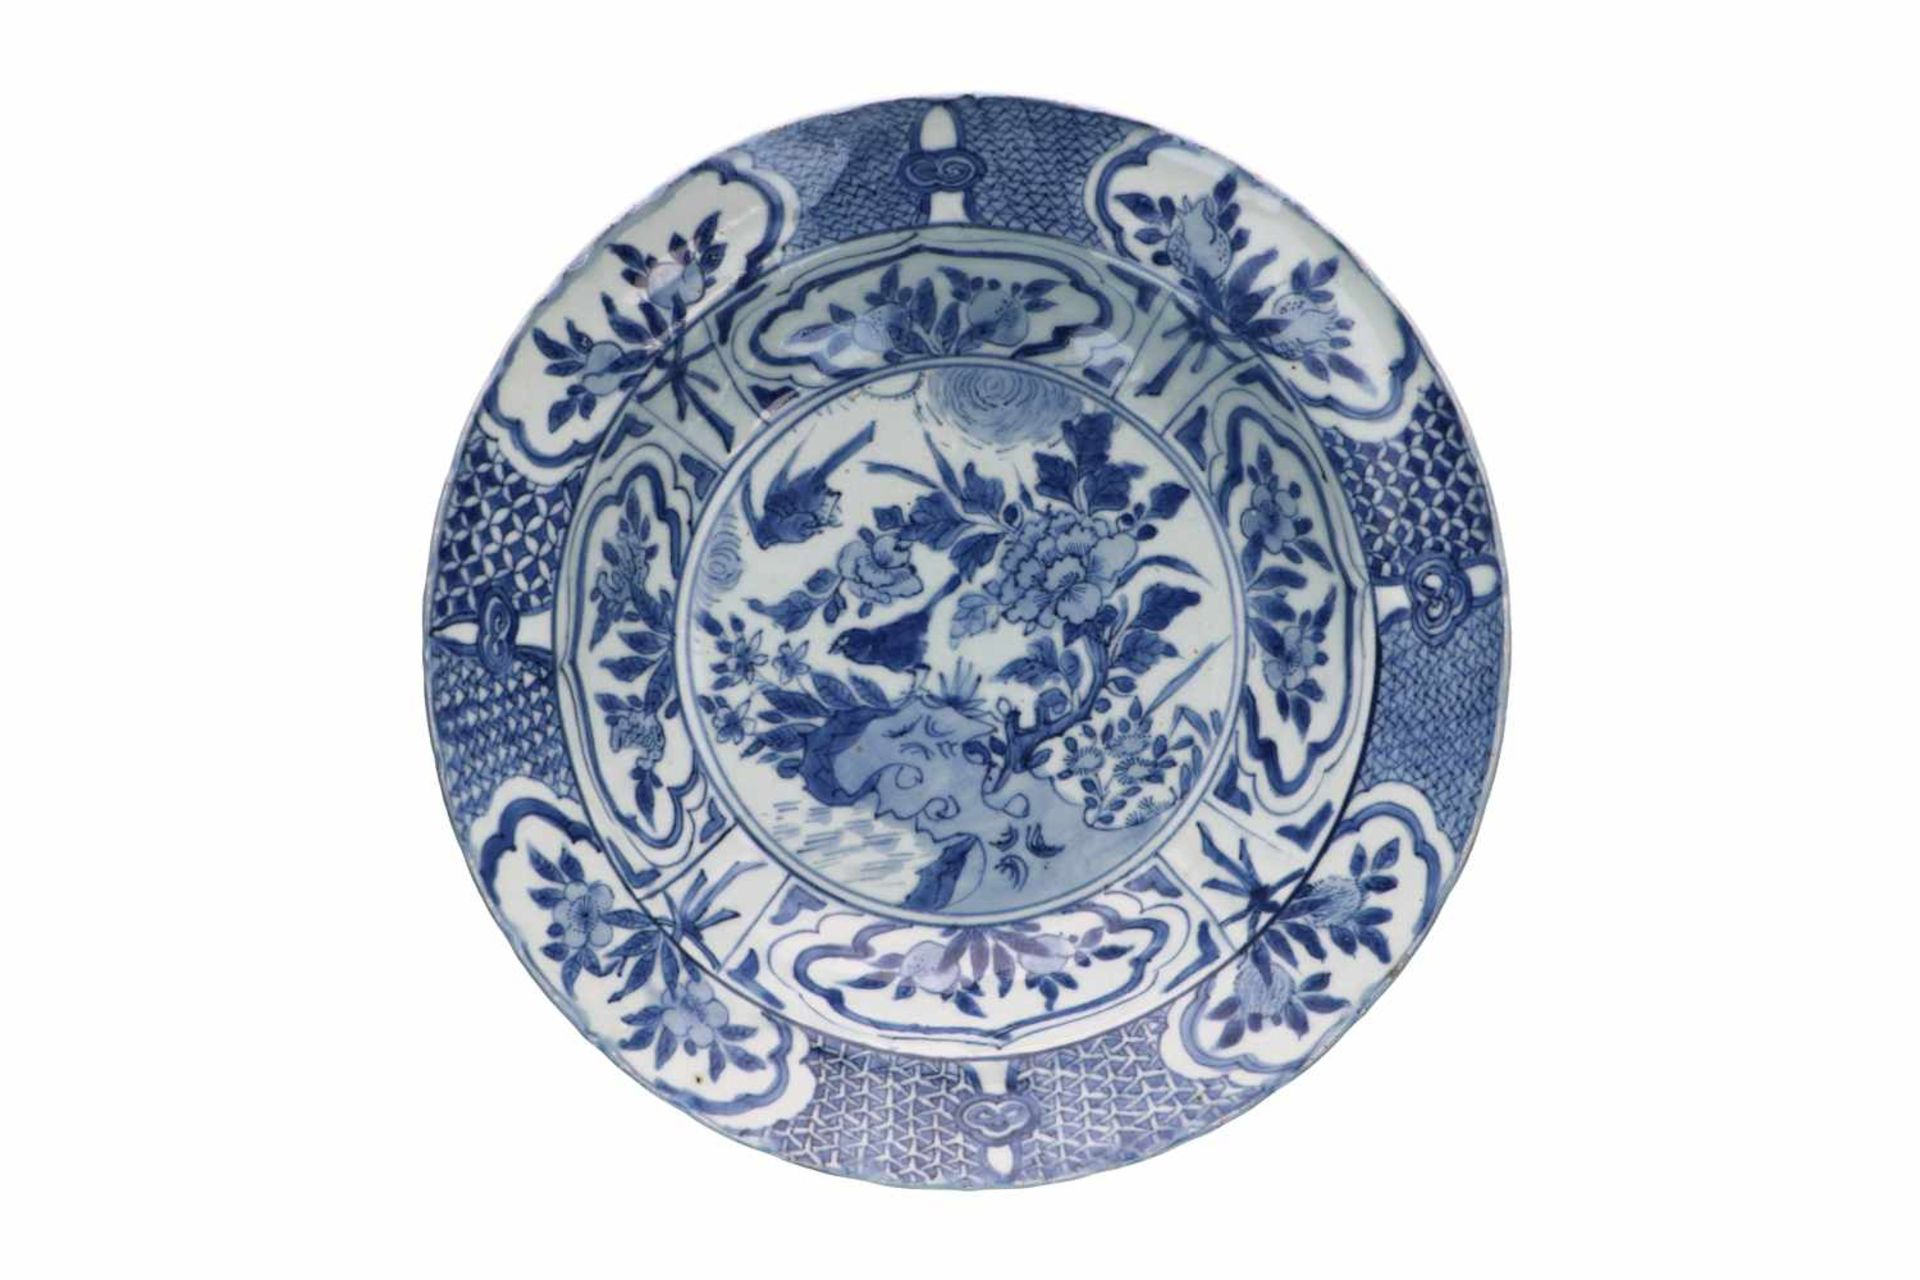 A blue and white 'kraak' porcelain deep dish, decorated with flowers, fruits and birds. Unmarked.